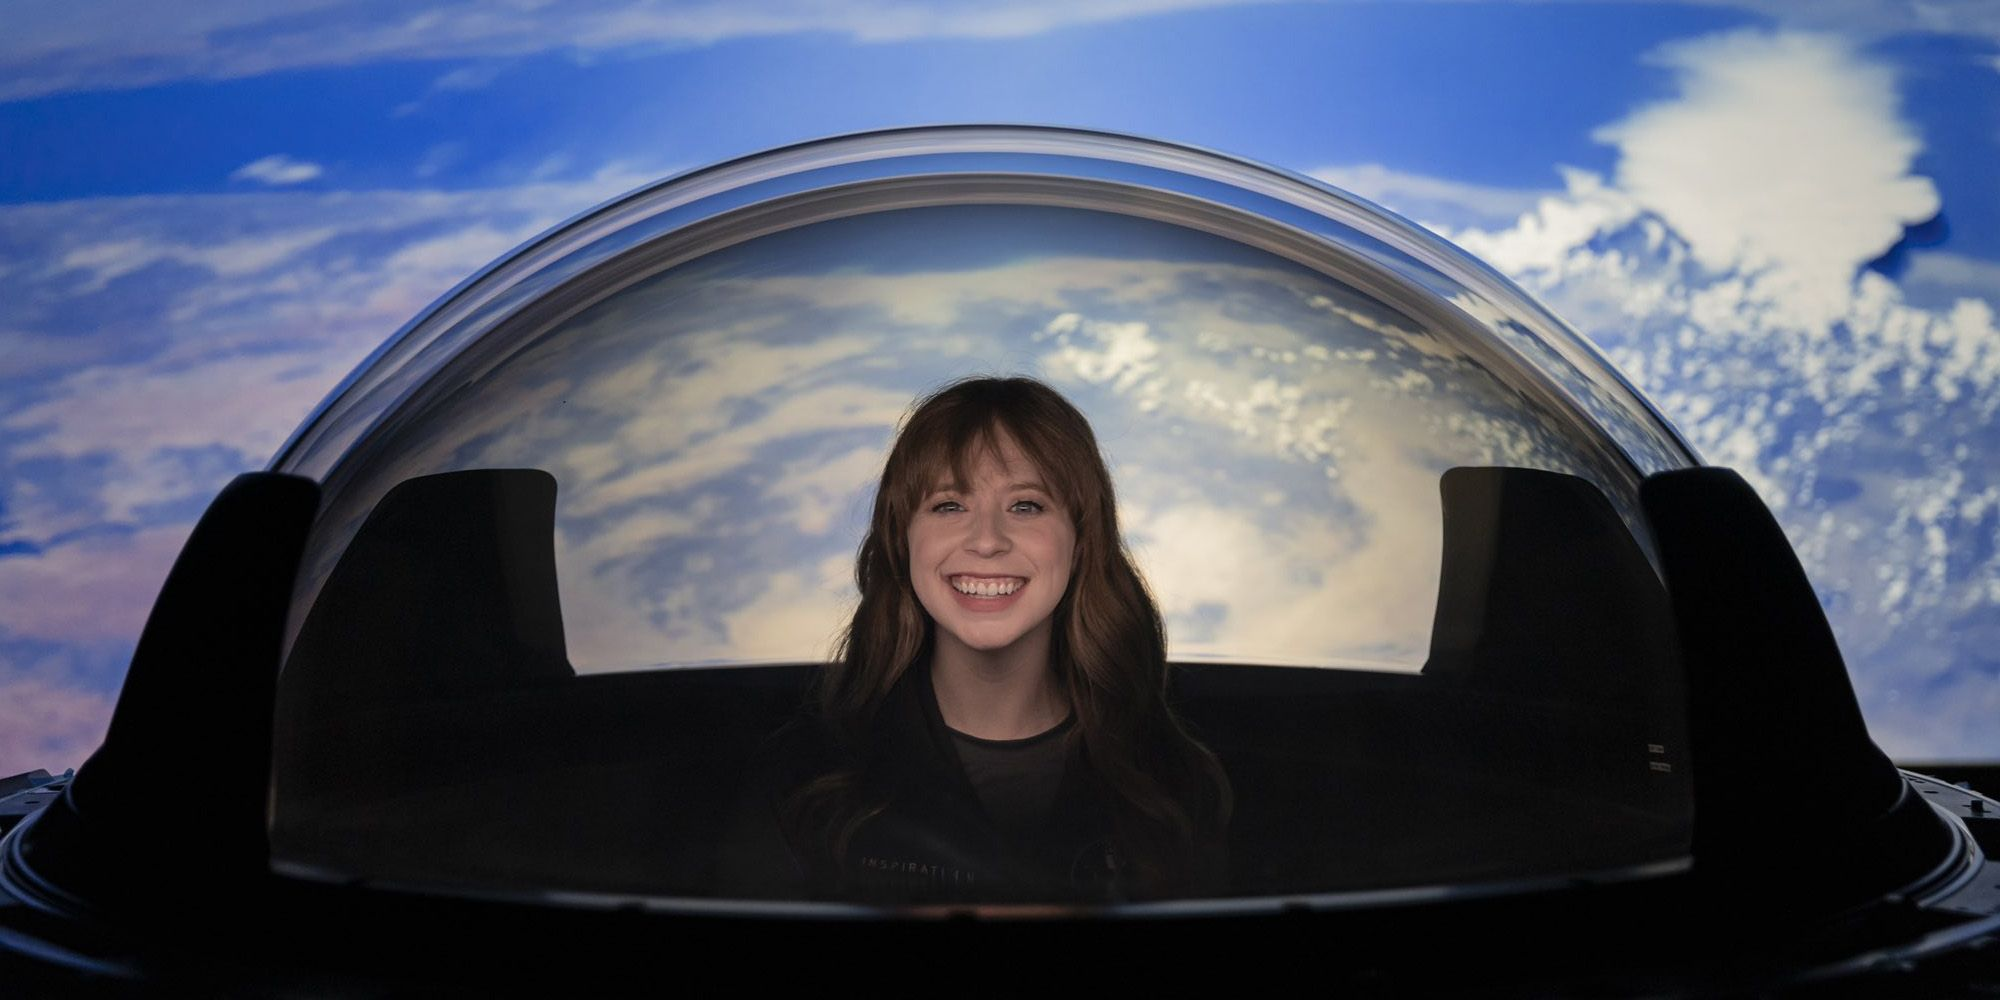 SpaceX Added A Glass Dome To Its Dragon Capsule So Astronauts Can Enjoy The View - Screen Rant